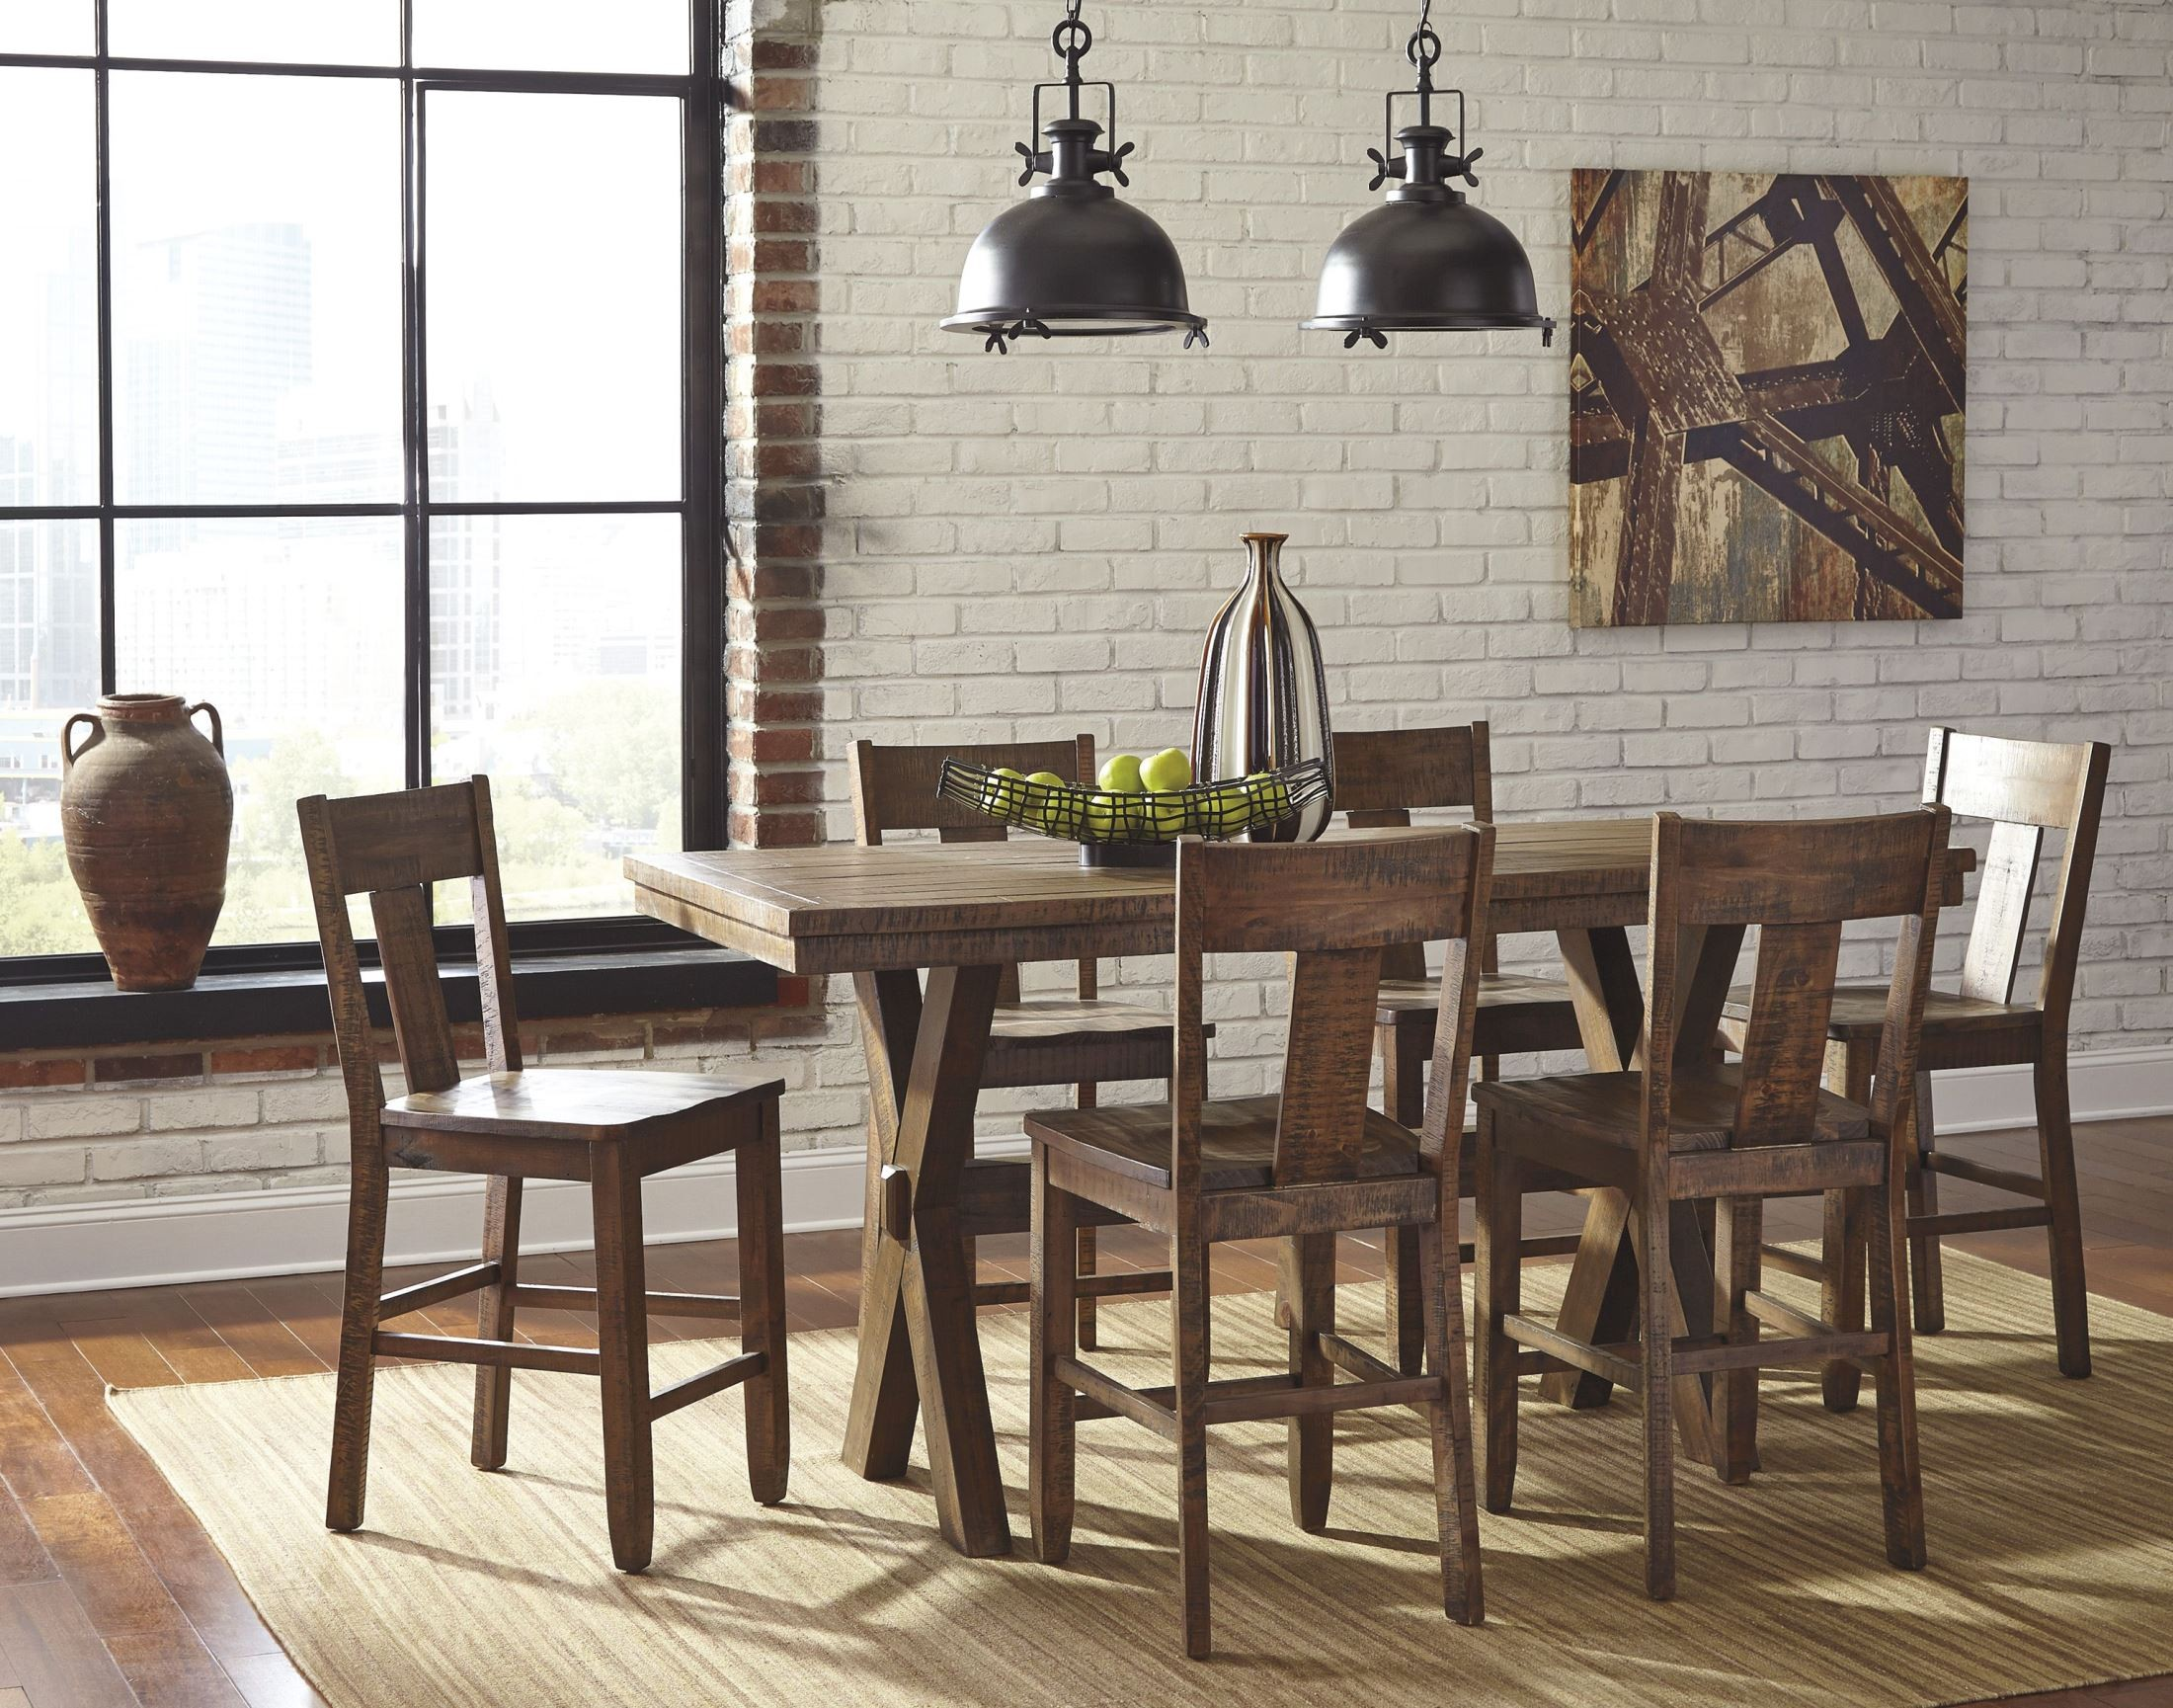 Walnord Rustic Brown Rectangular Counter Dining Room Set From Ashley D463 13